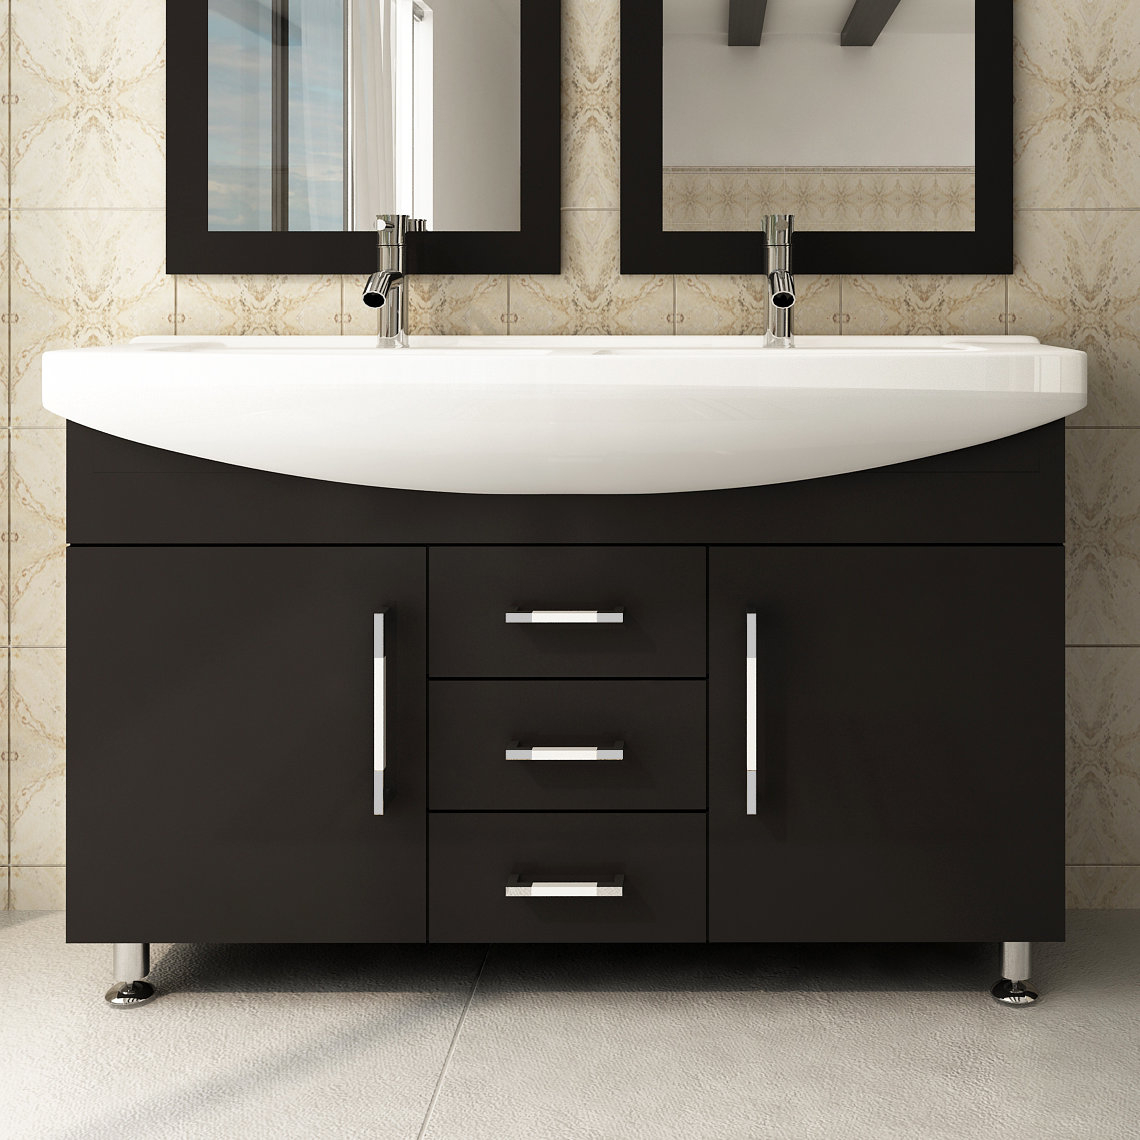 Wayfair Jwh Living Celine 48 Double Bathroom Vanity with regard to measurements 1140 X 1140